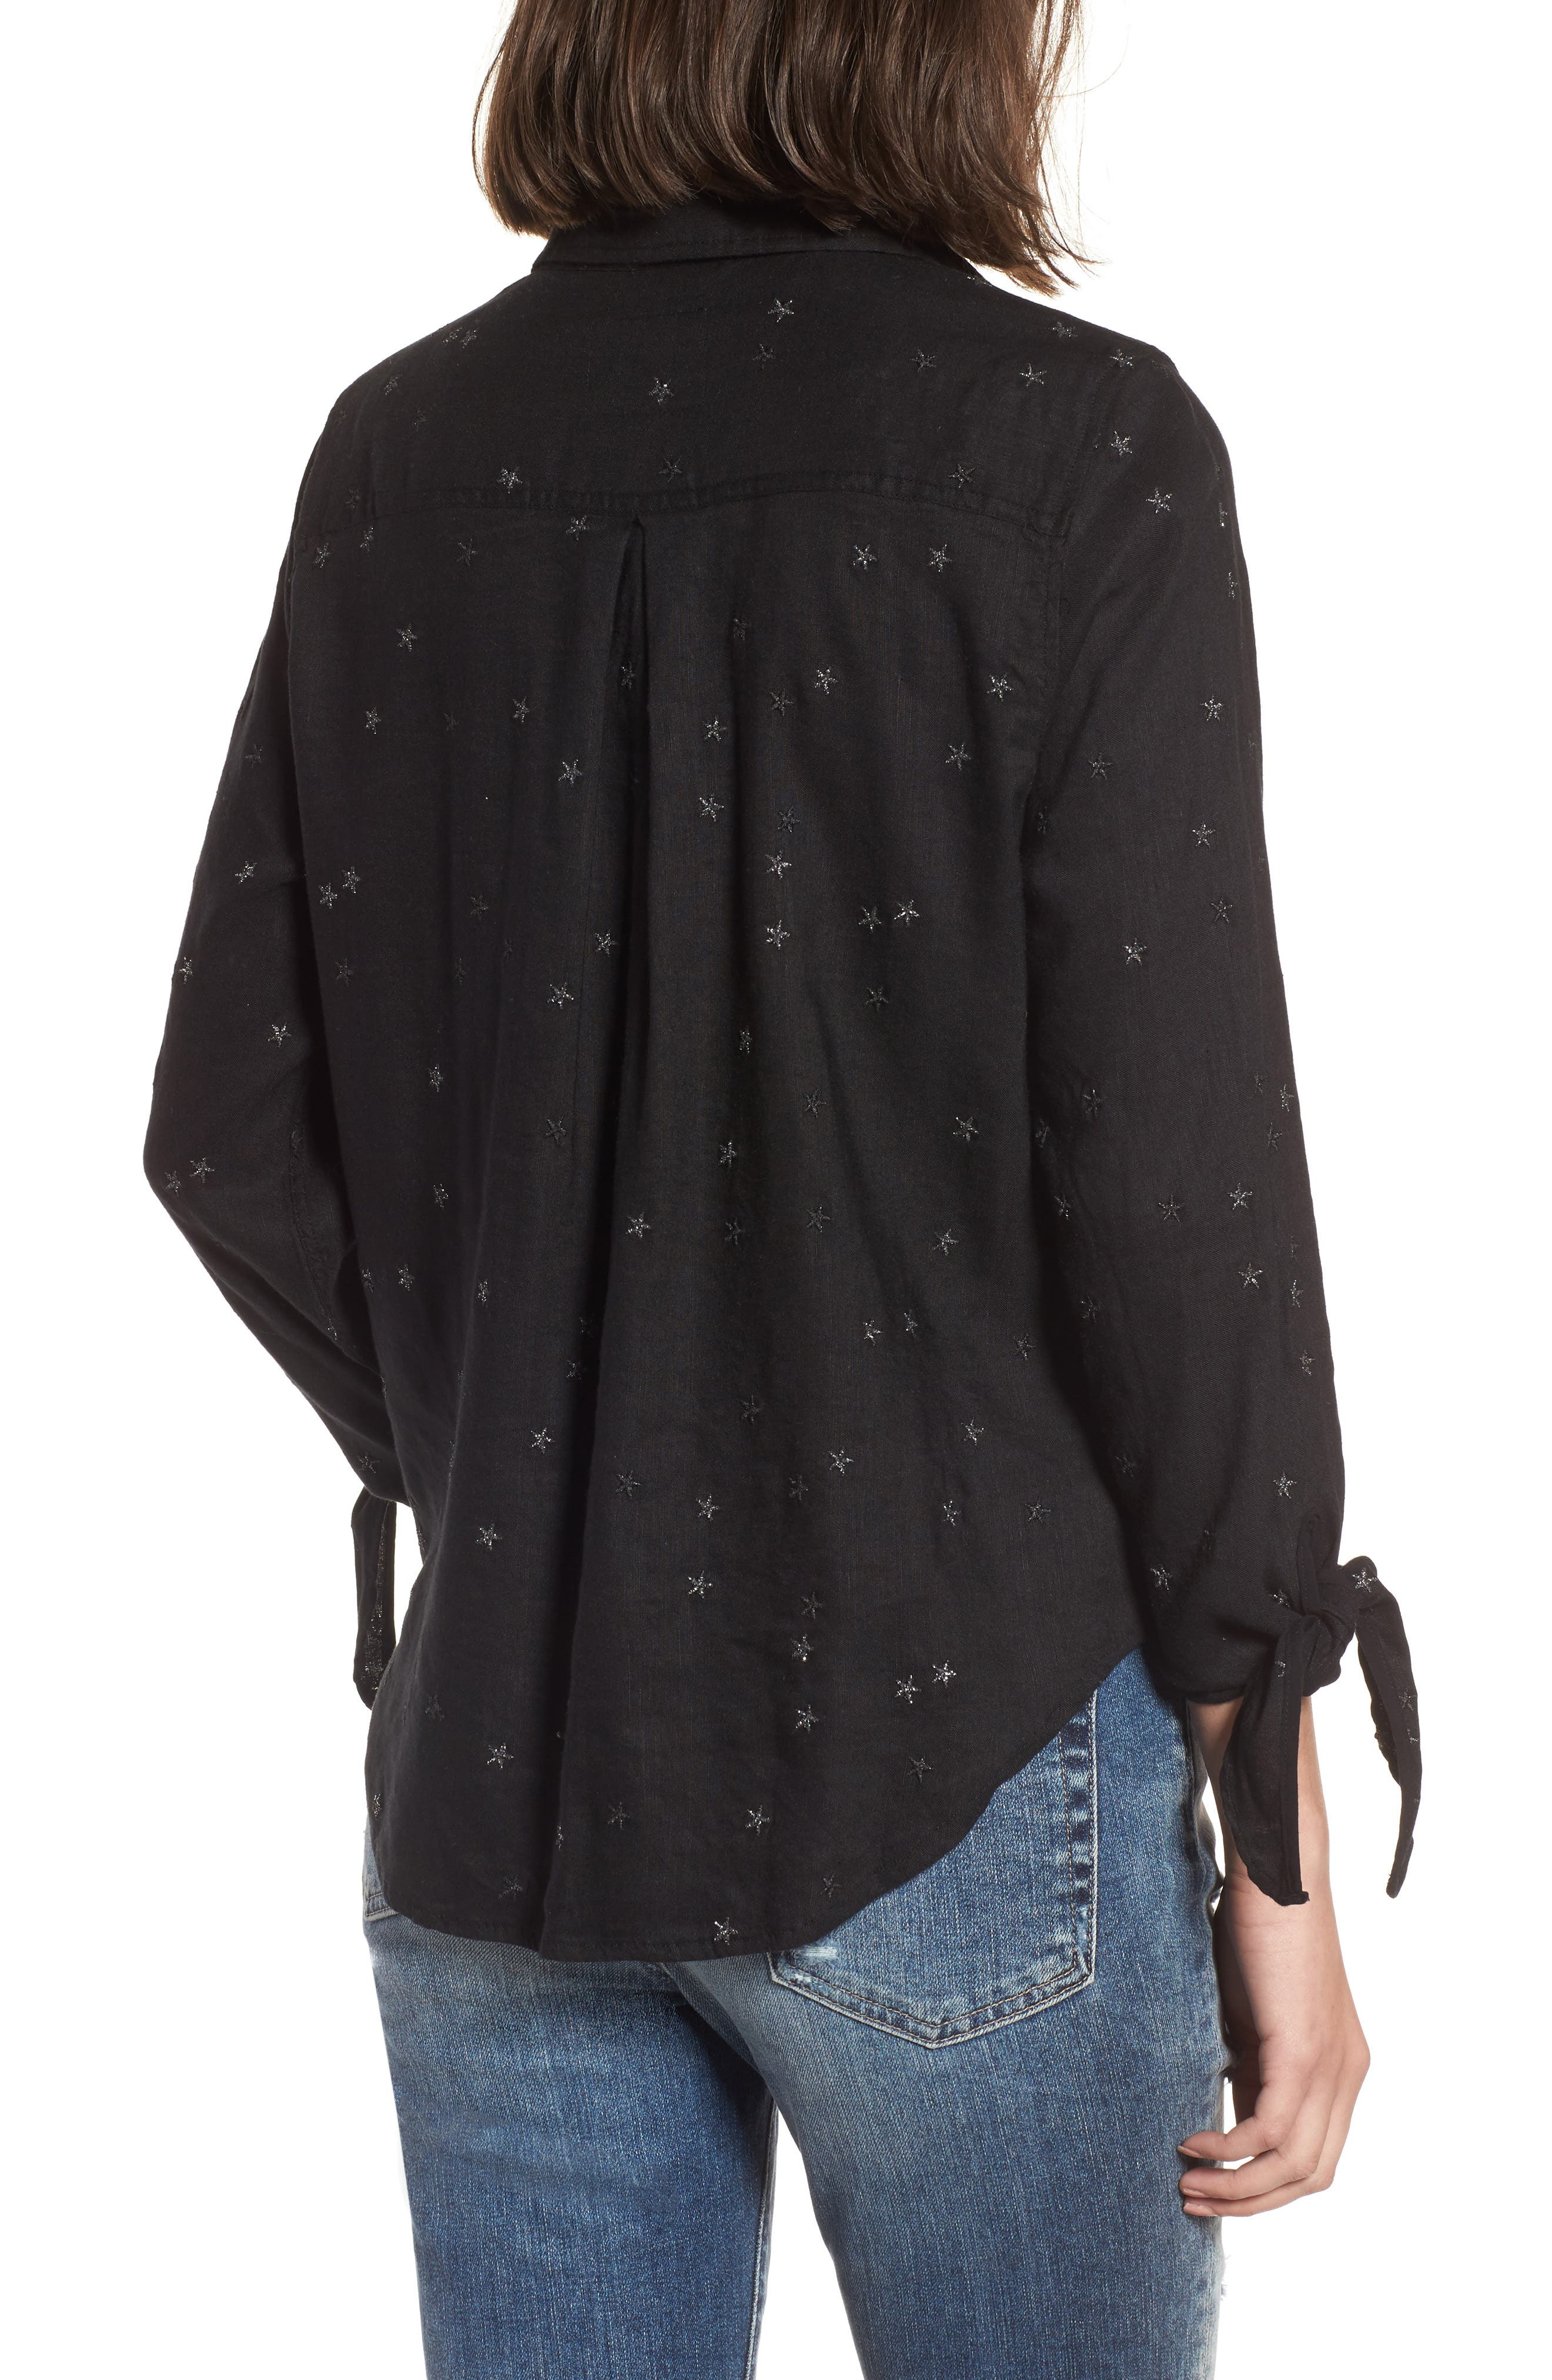 Robyn Shirt,                             Alternate thumbnail 2, color,                             Black With Stars